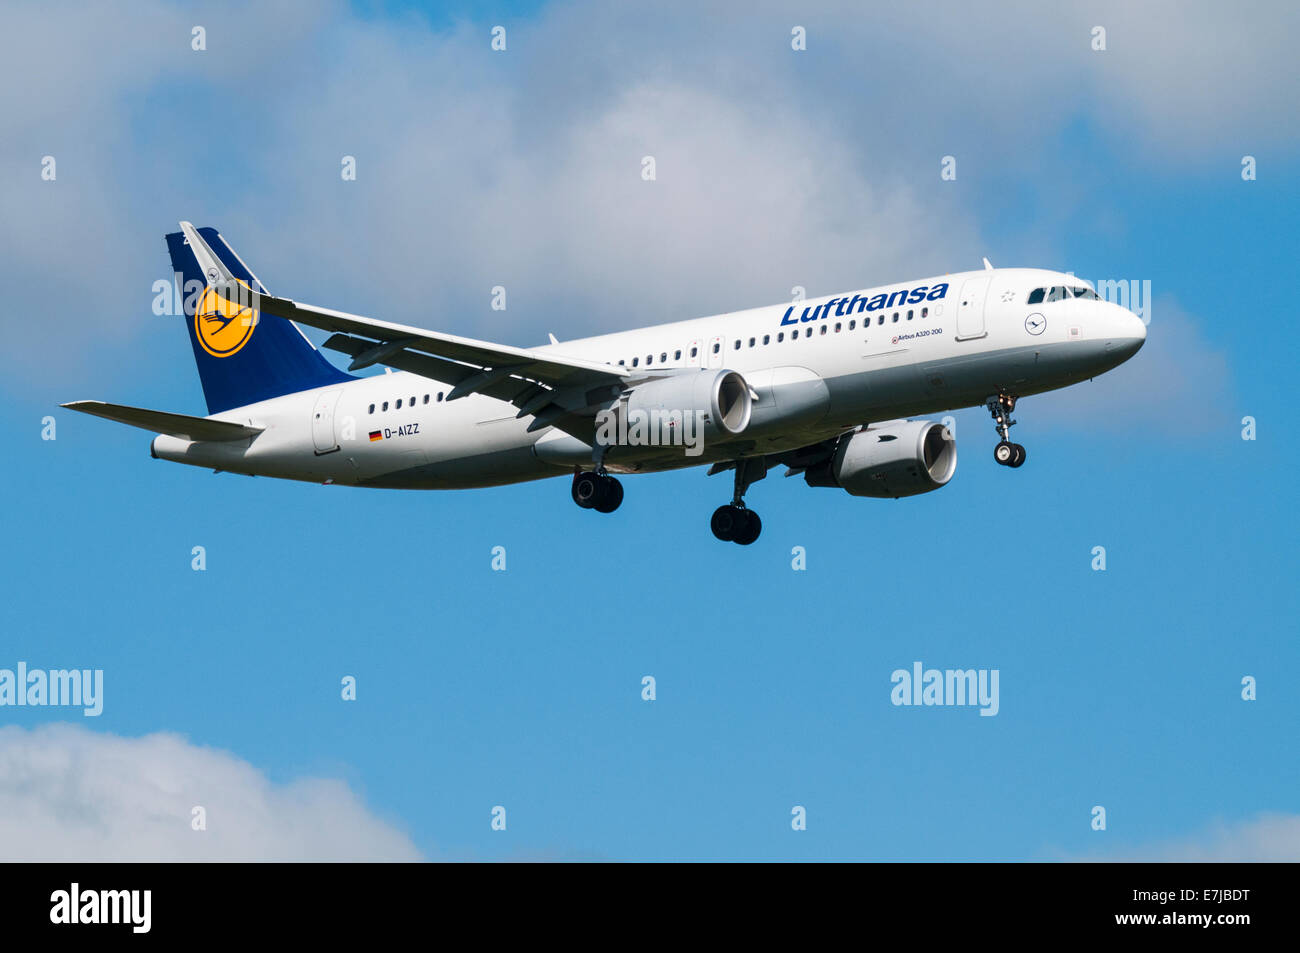 Lufthansa Airbus A320 aeroplane on approach to land with